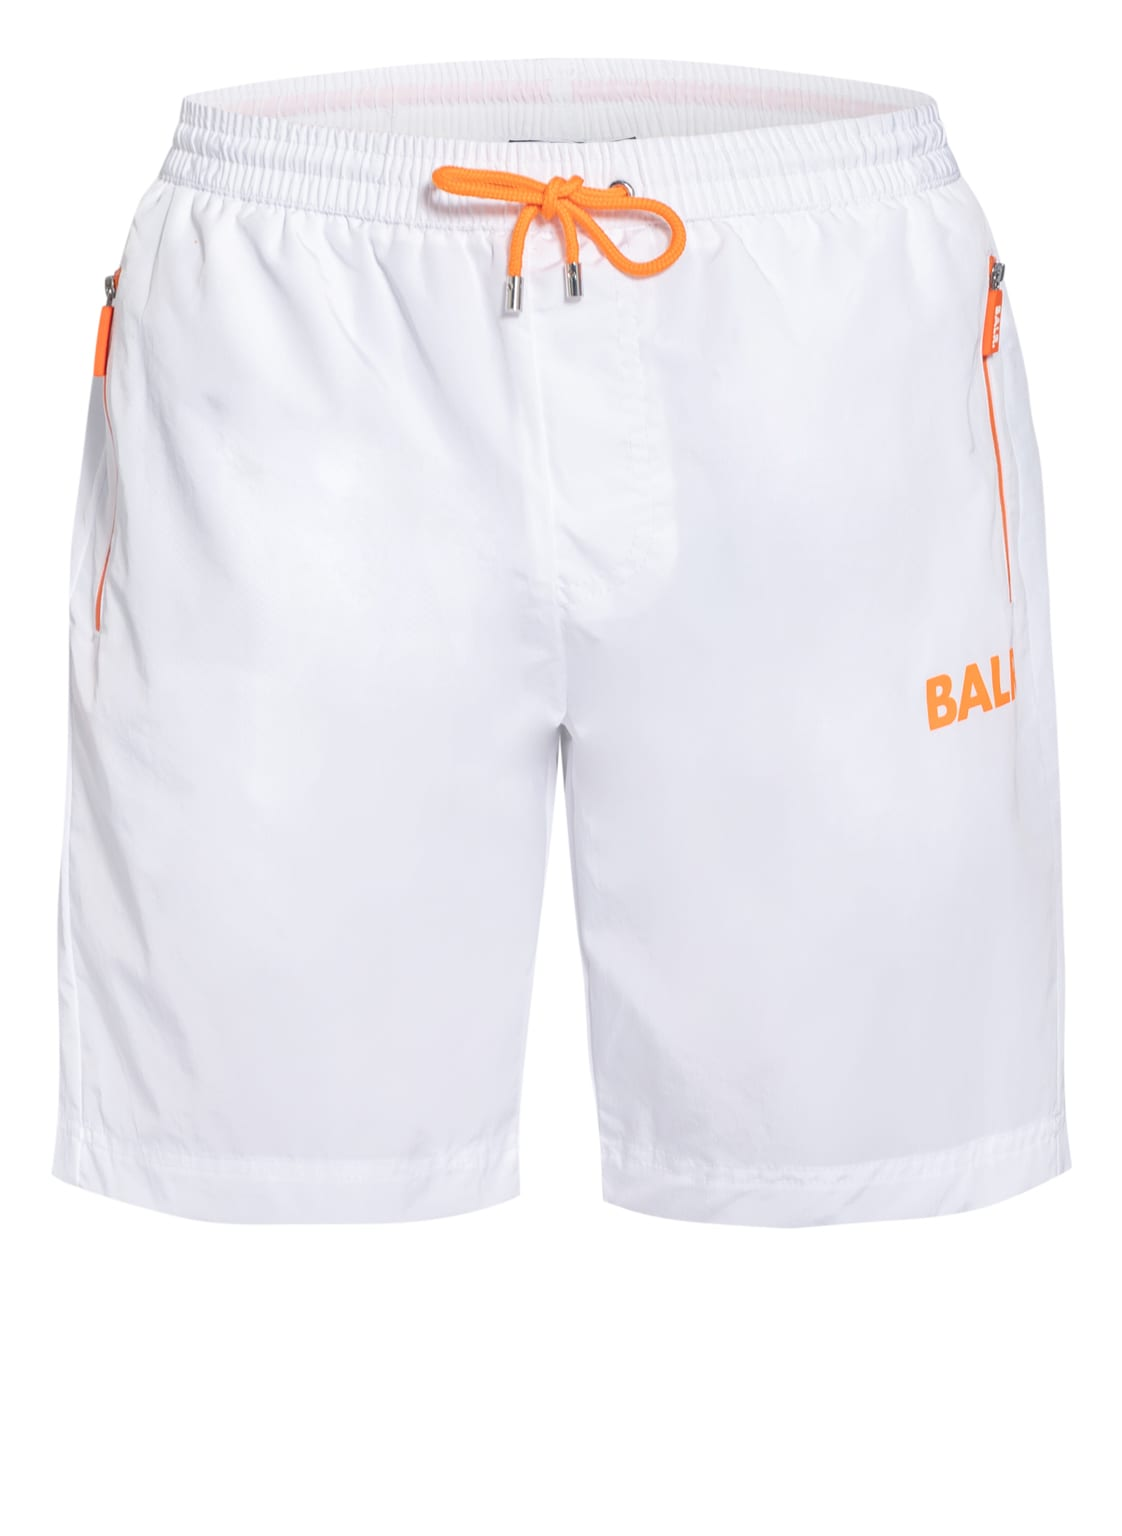 Image of Balr. Shorts weiss